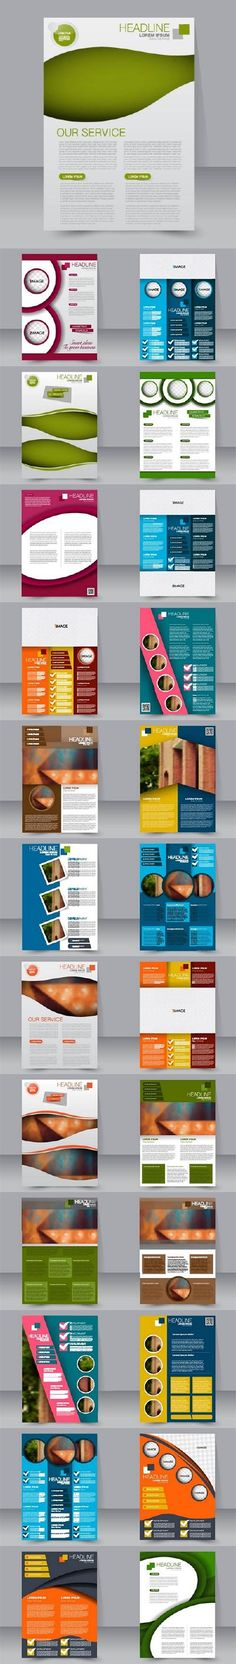 Flyer Samples Templates Flyer Template Of Back To School And Education Objects And Elements .